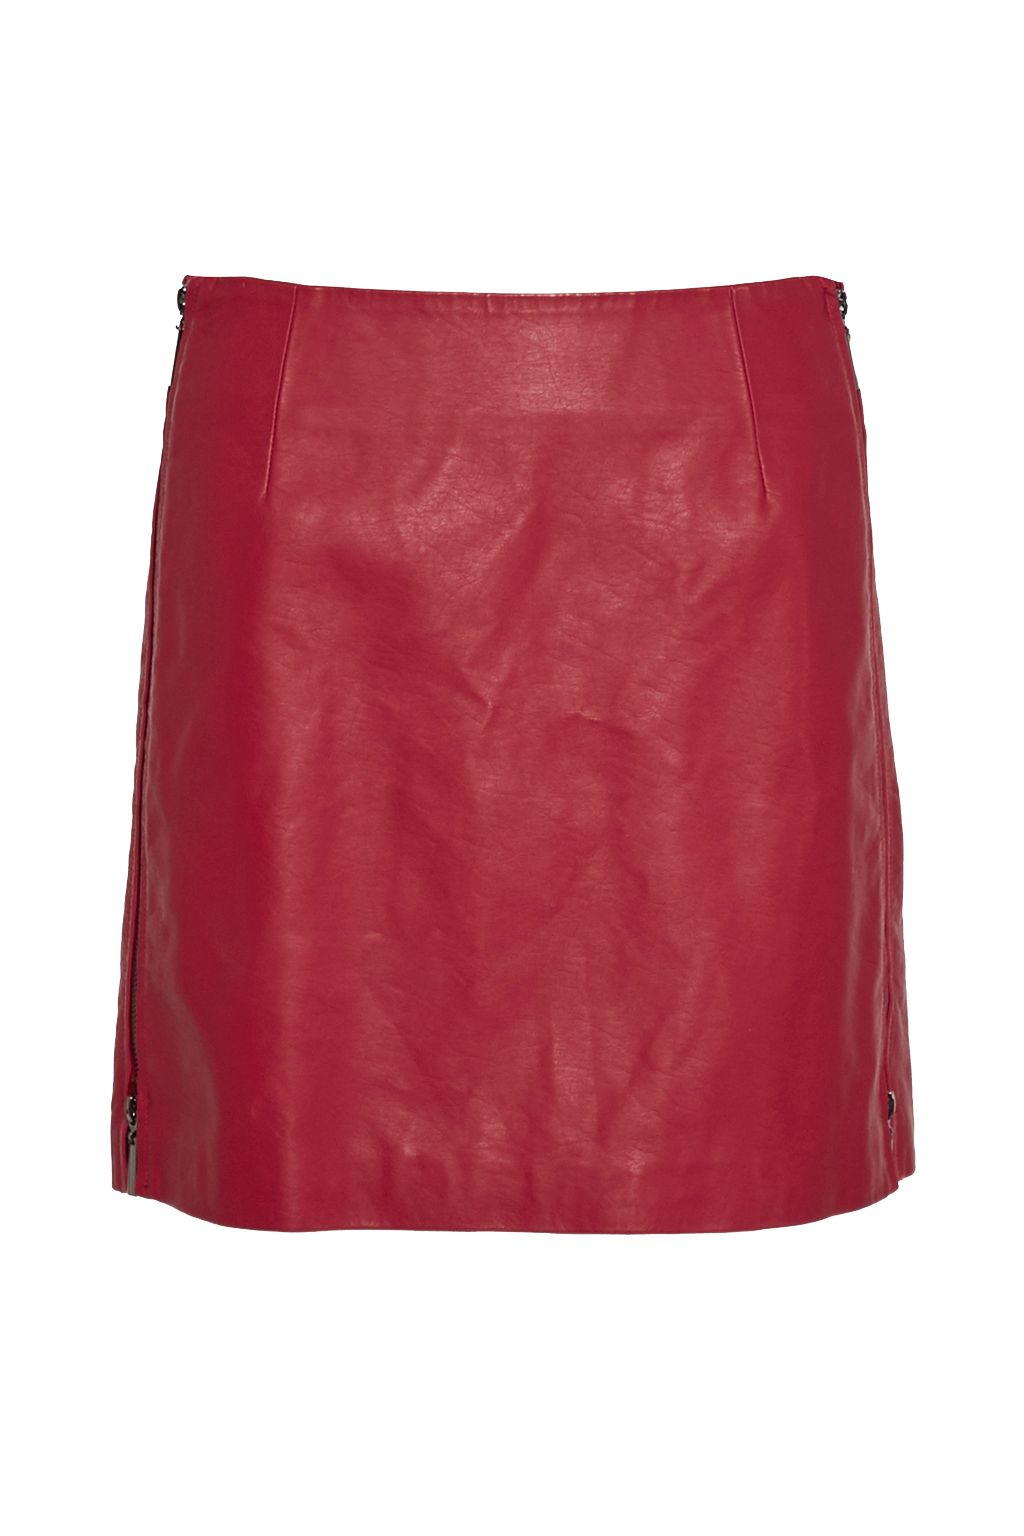 French Connection Canterbury Zipped Faux Leather Skirt, Red